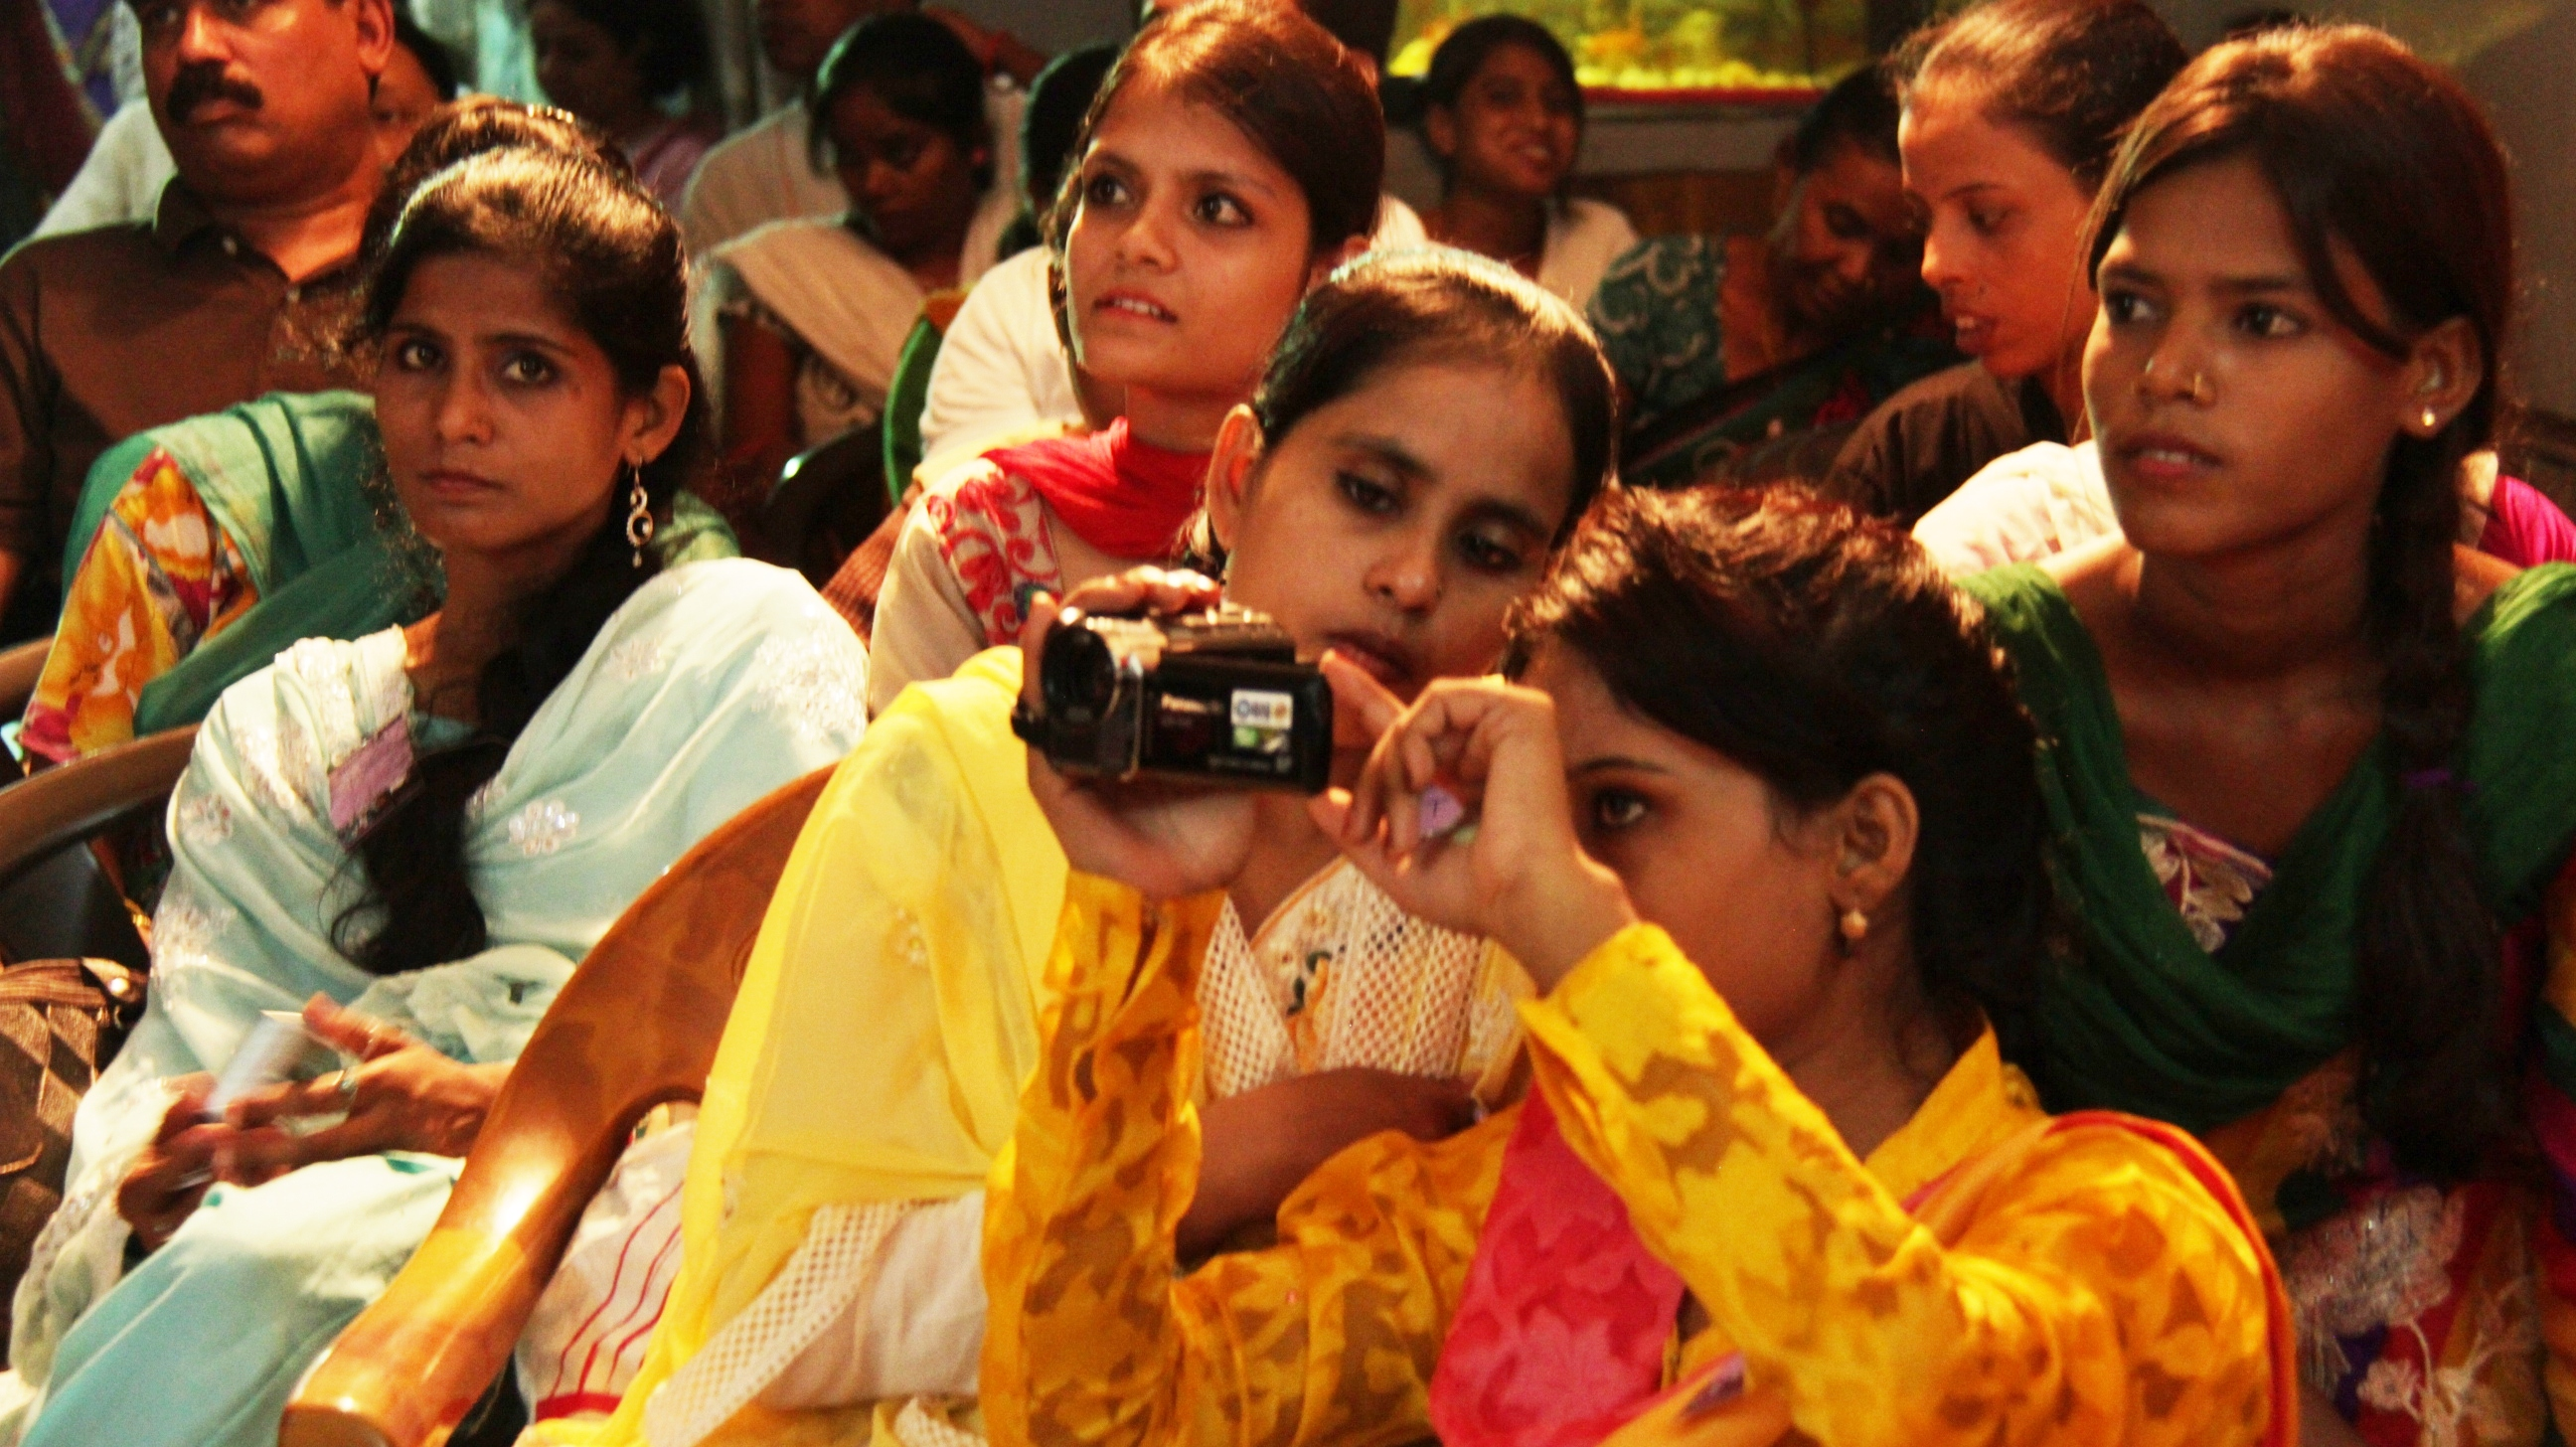 Muslim women in Lucknow are introduced to information technology, filmmaking and photography as part of an innovative feminist leadership programme.